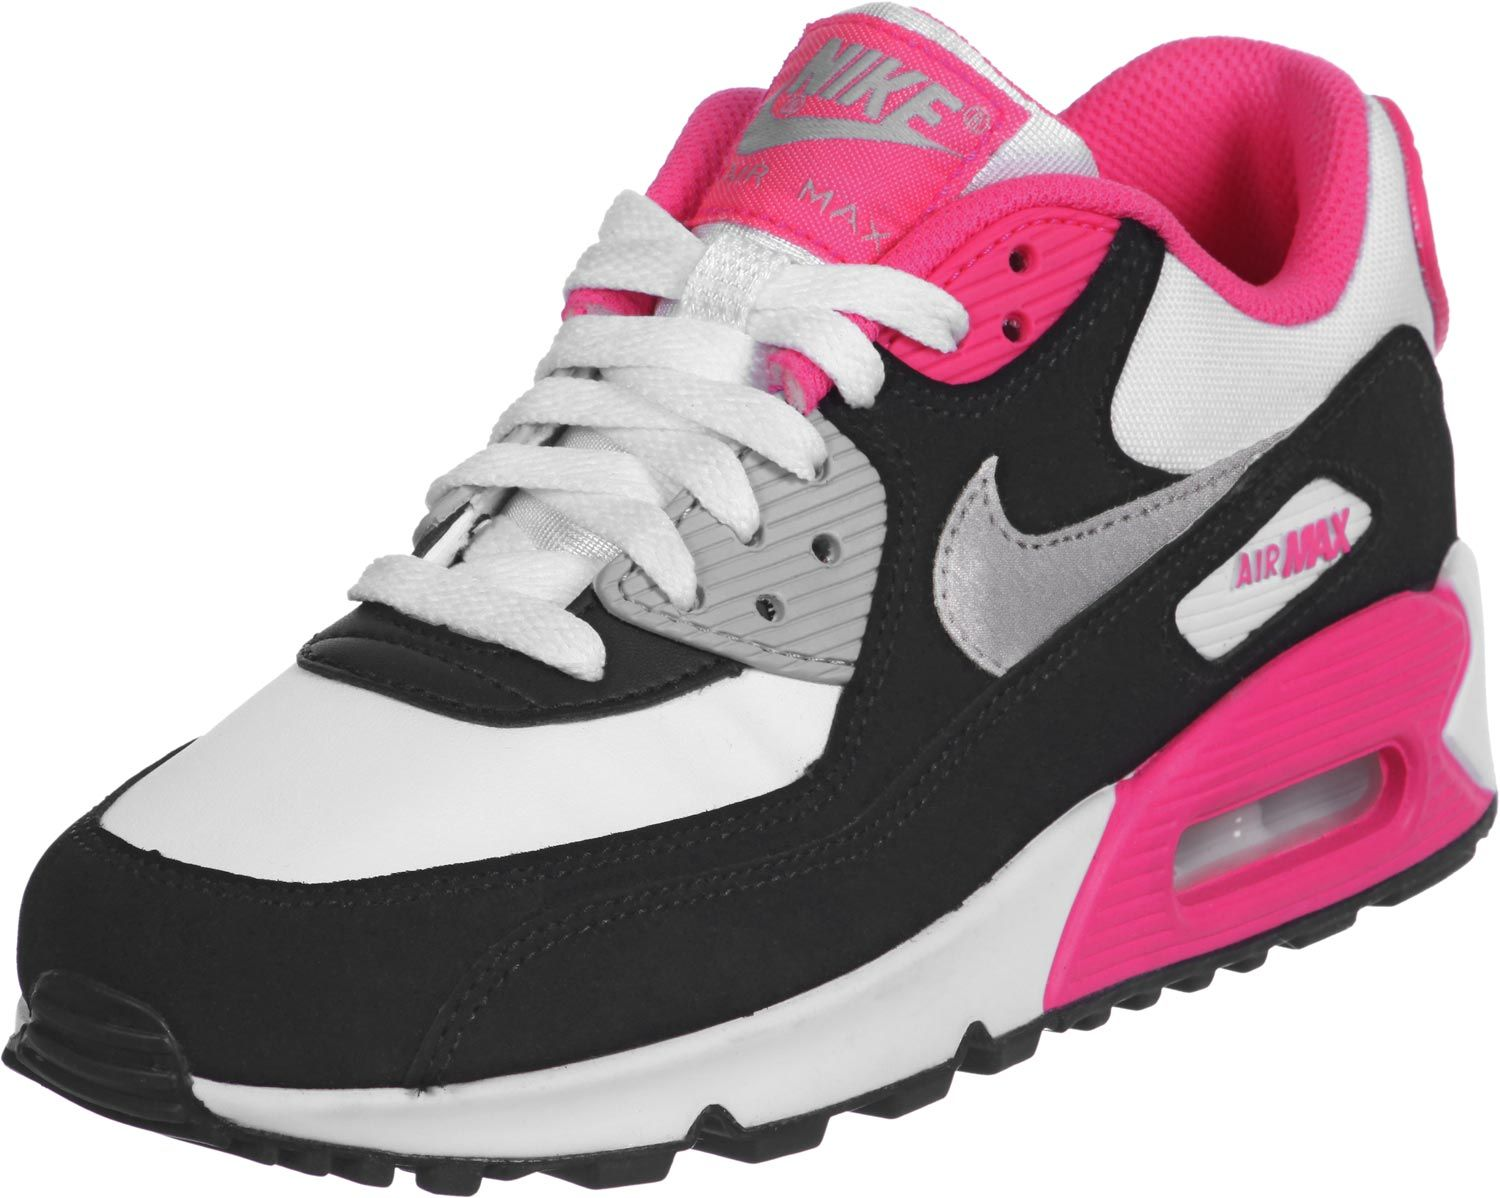 Shoes1 Pink nike shoes, Nike air max, Nike air